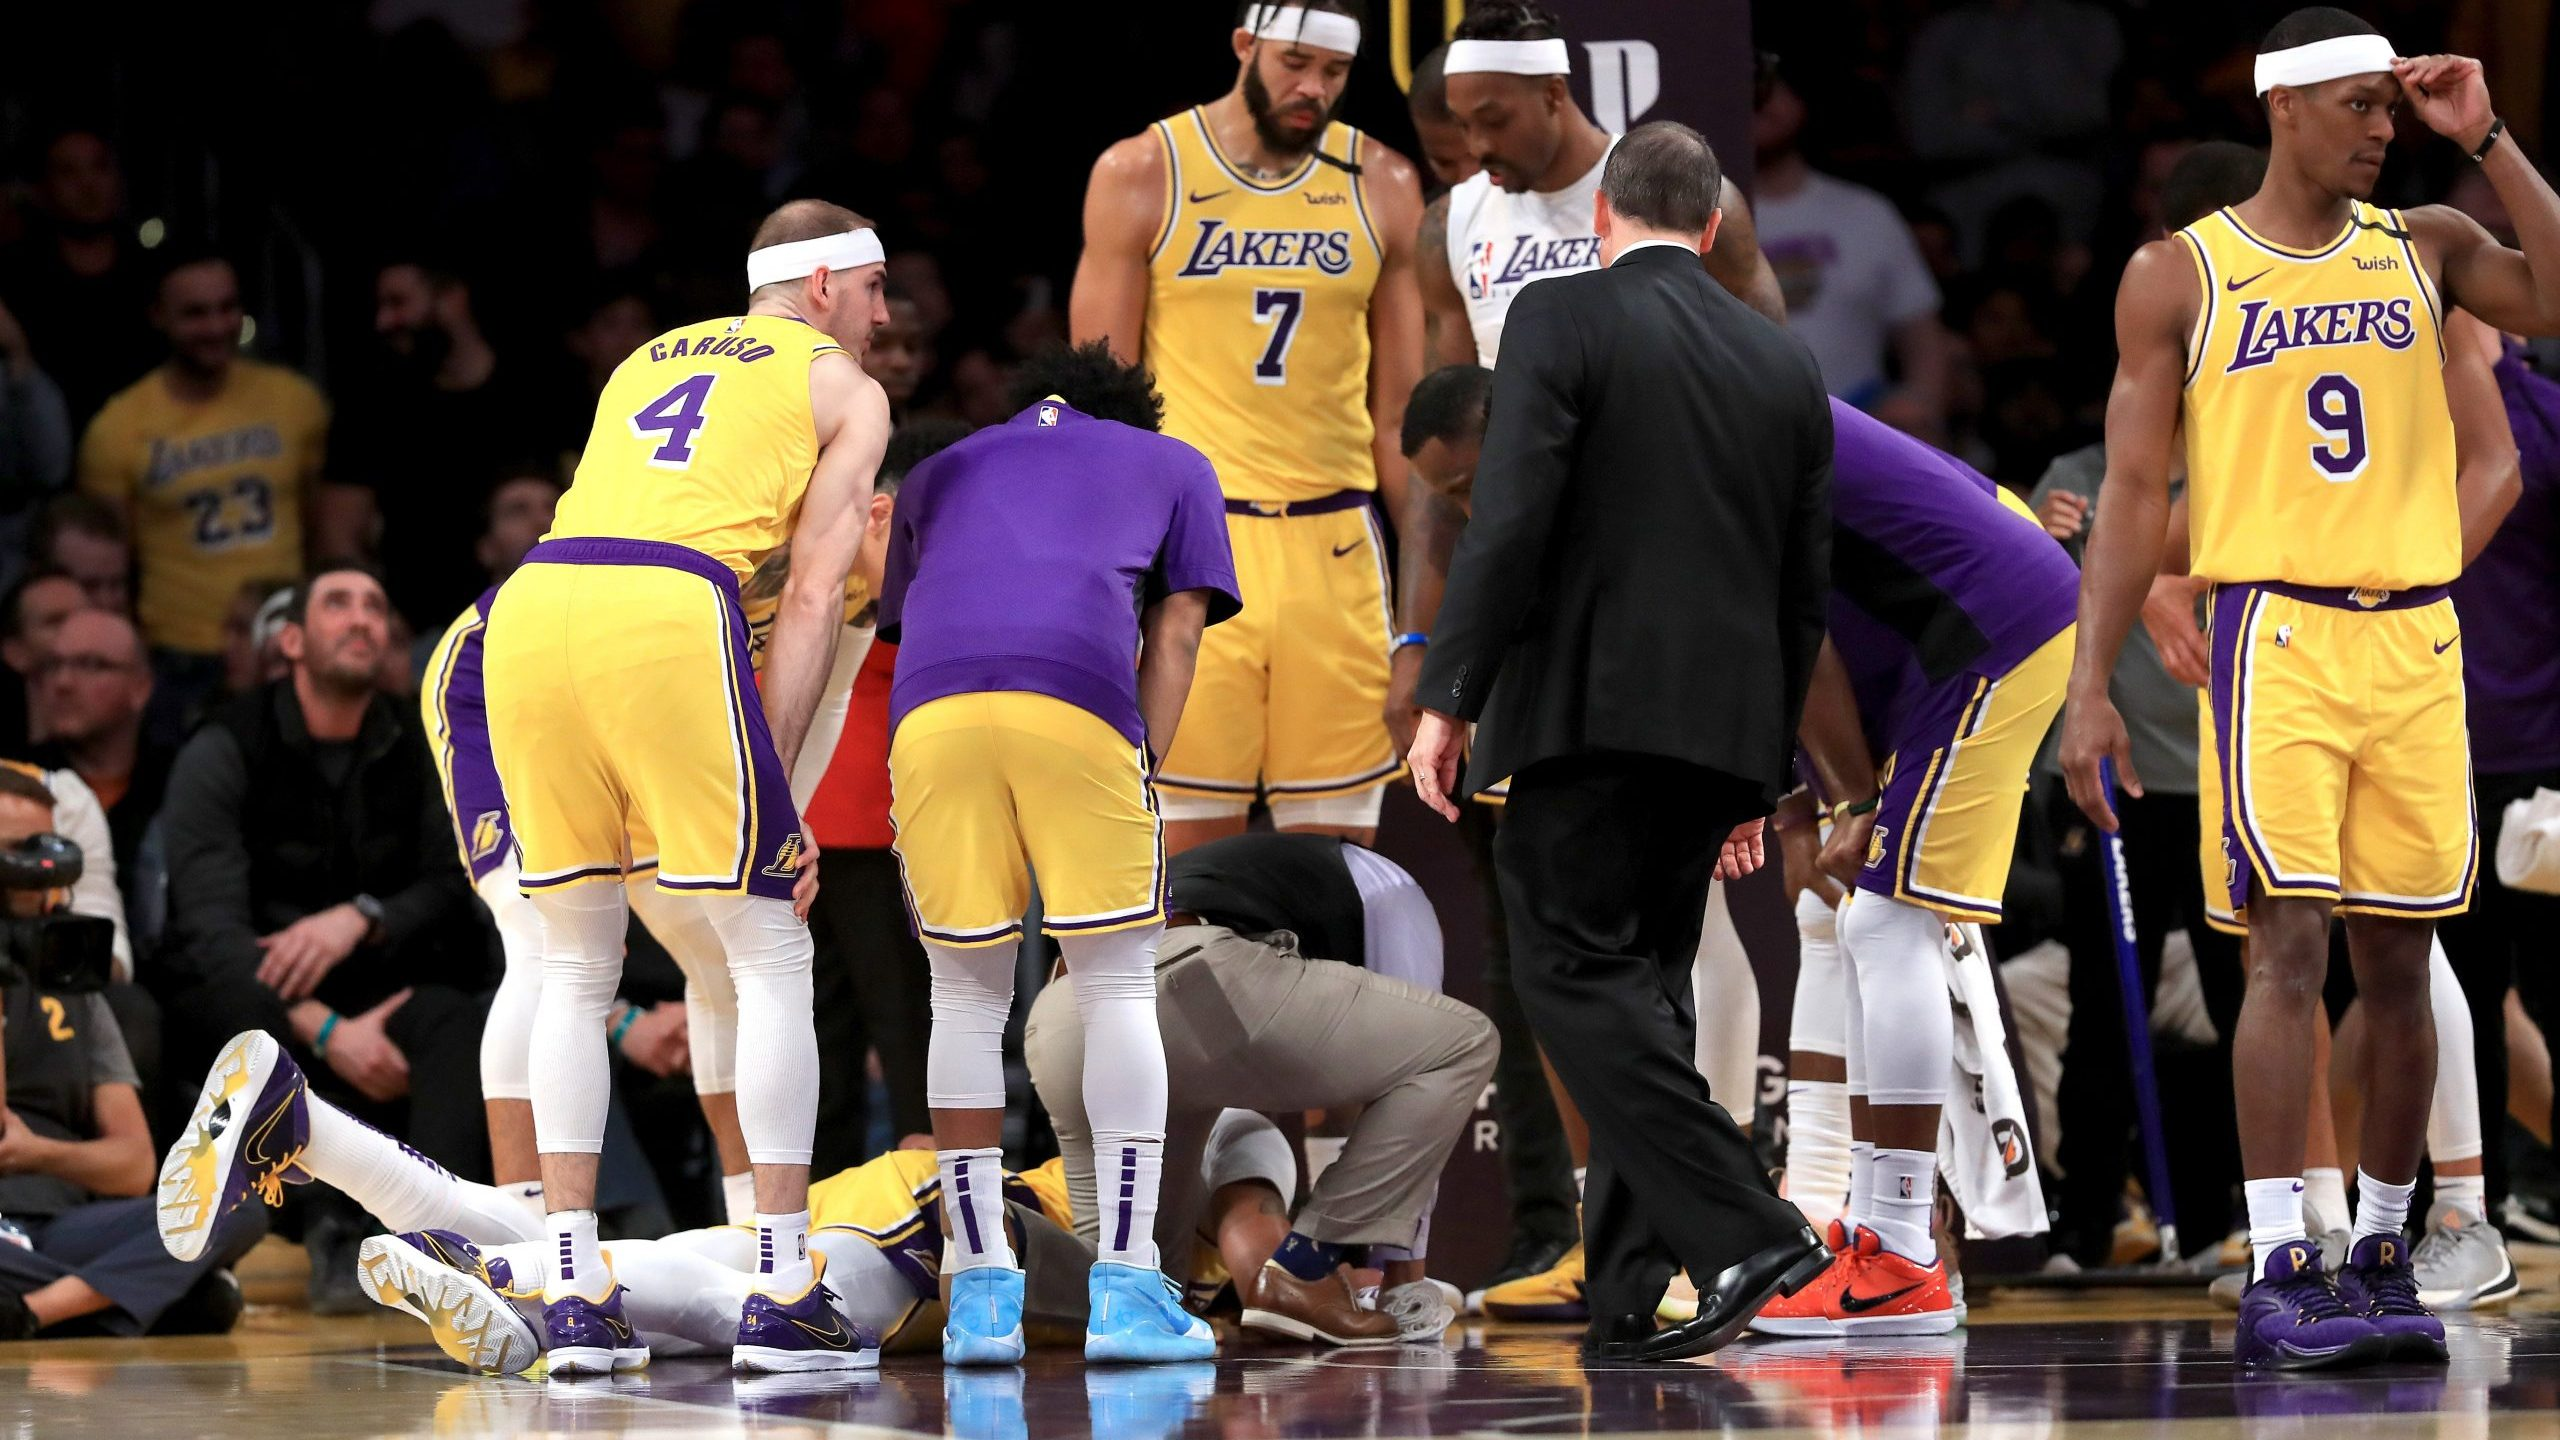 Los Angeles Lakers players Alex Caruso, JaVale McGee, Rajon Rondo and Dwight Howard surround Anthony Davis as he lies on the ground during a match against the New York Knicks at Staples Center on Jan. 7, 2020 in Los Angeles. (Credit: Sean M. Haffey/Getty Images)